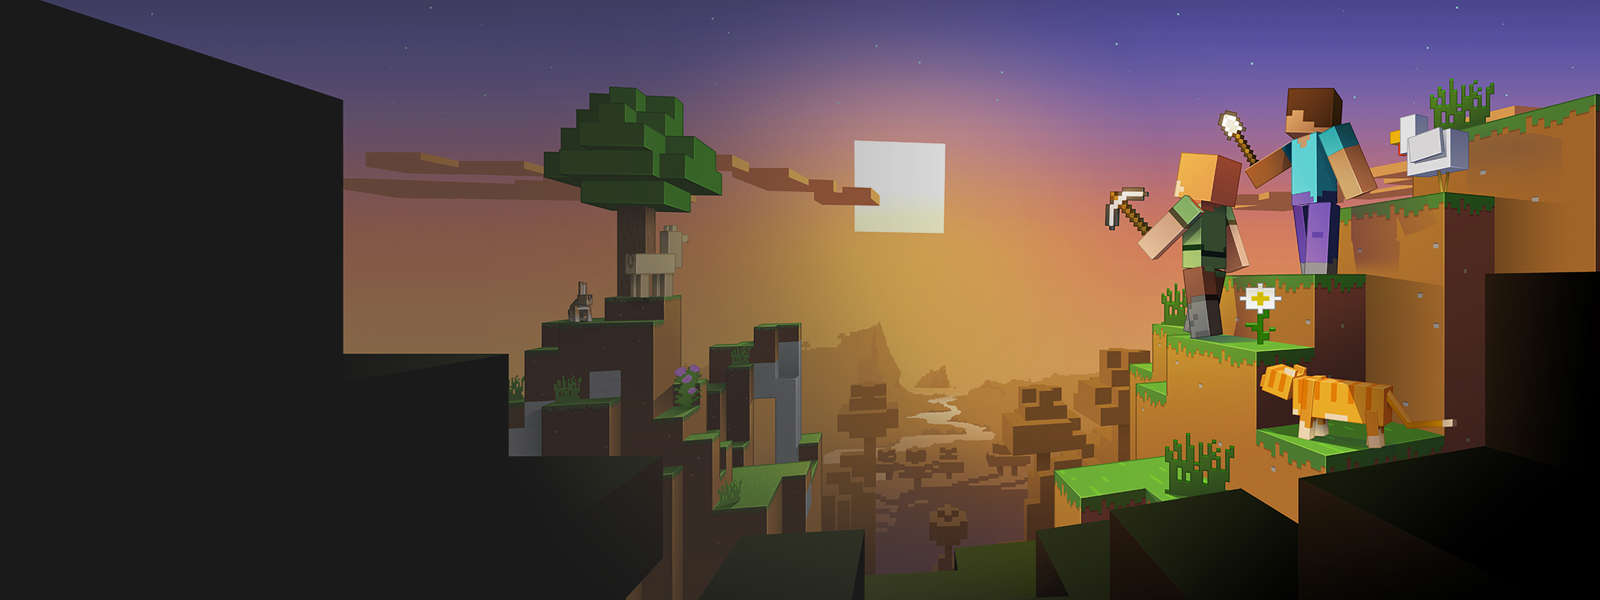 Building 92 microsoft store - Characters In A Minecraft Landscape